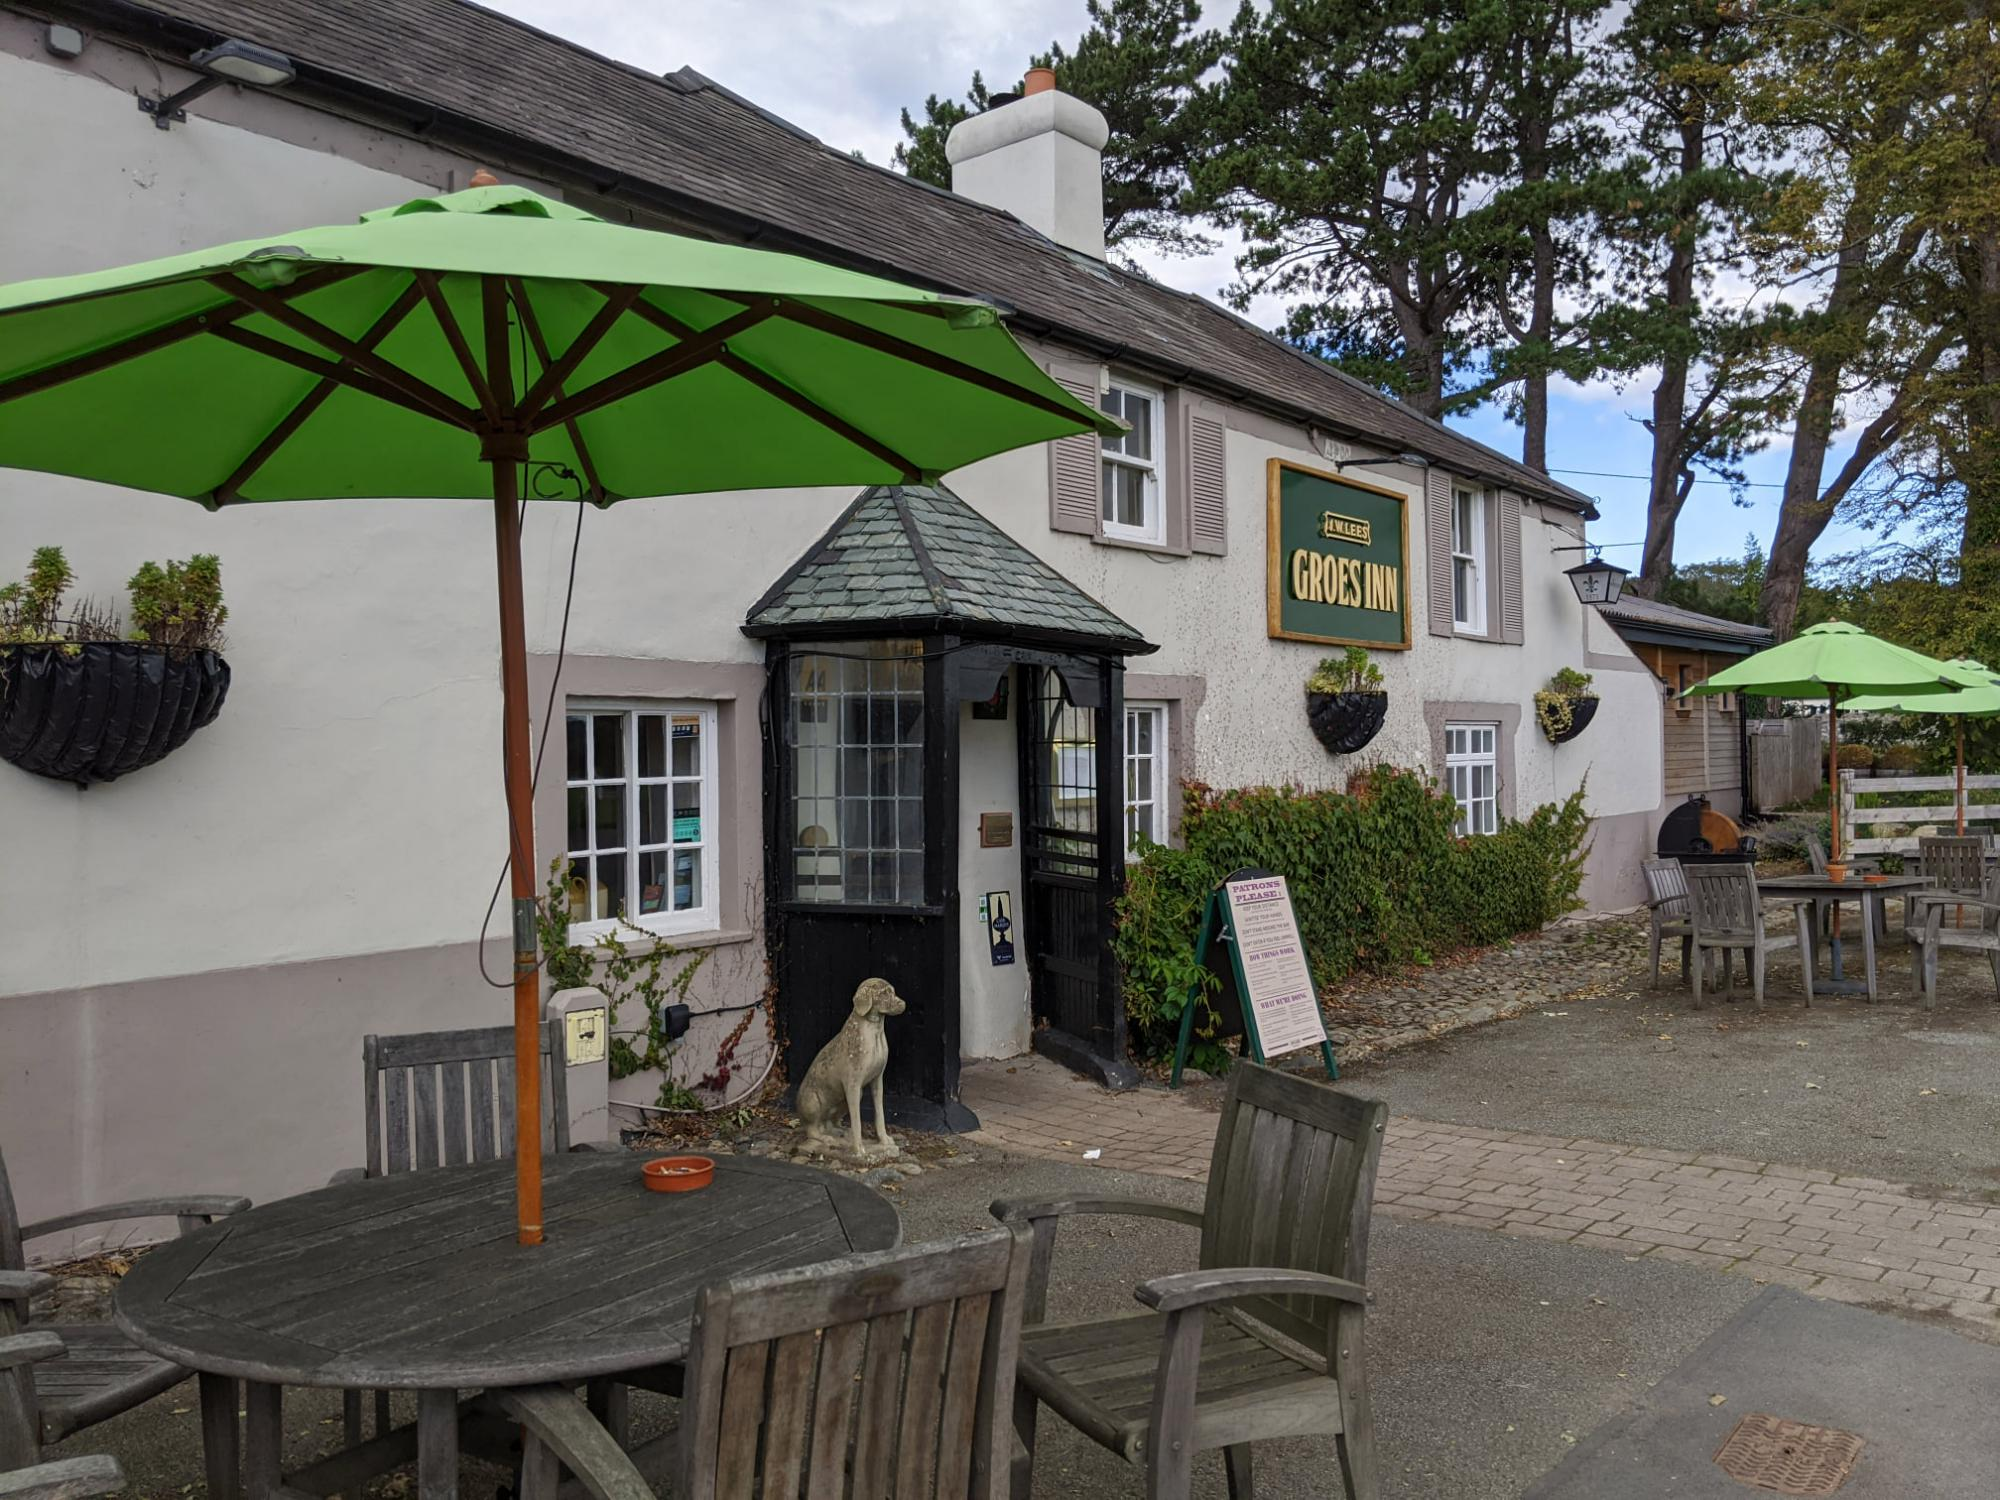 Hotels in Conwy holidays at Cool Places